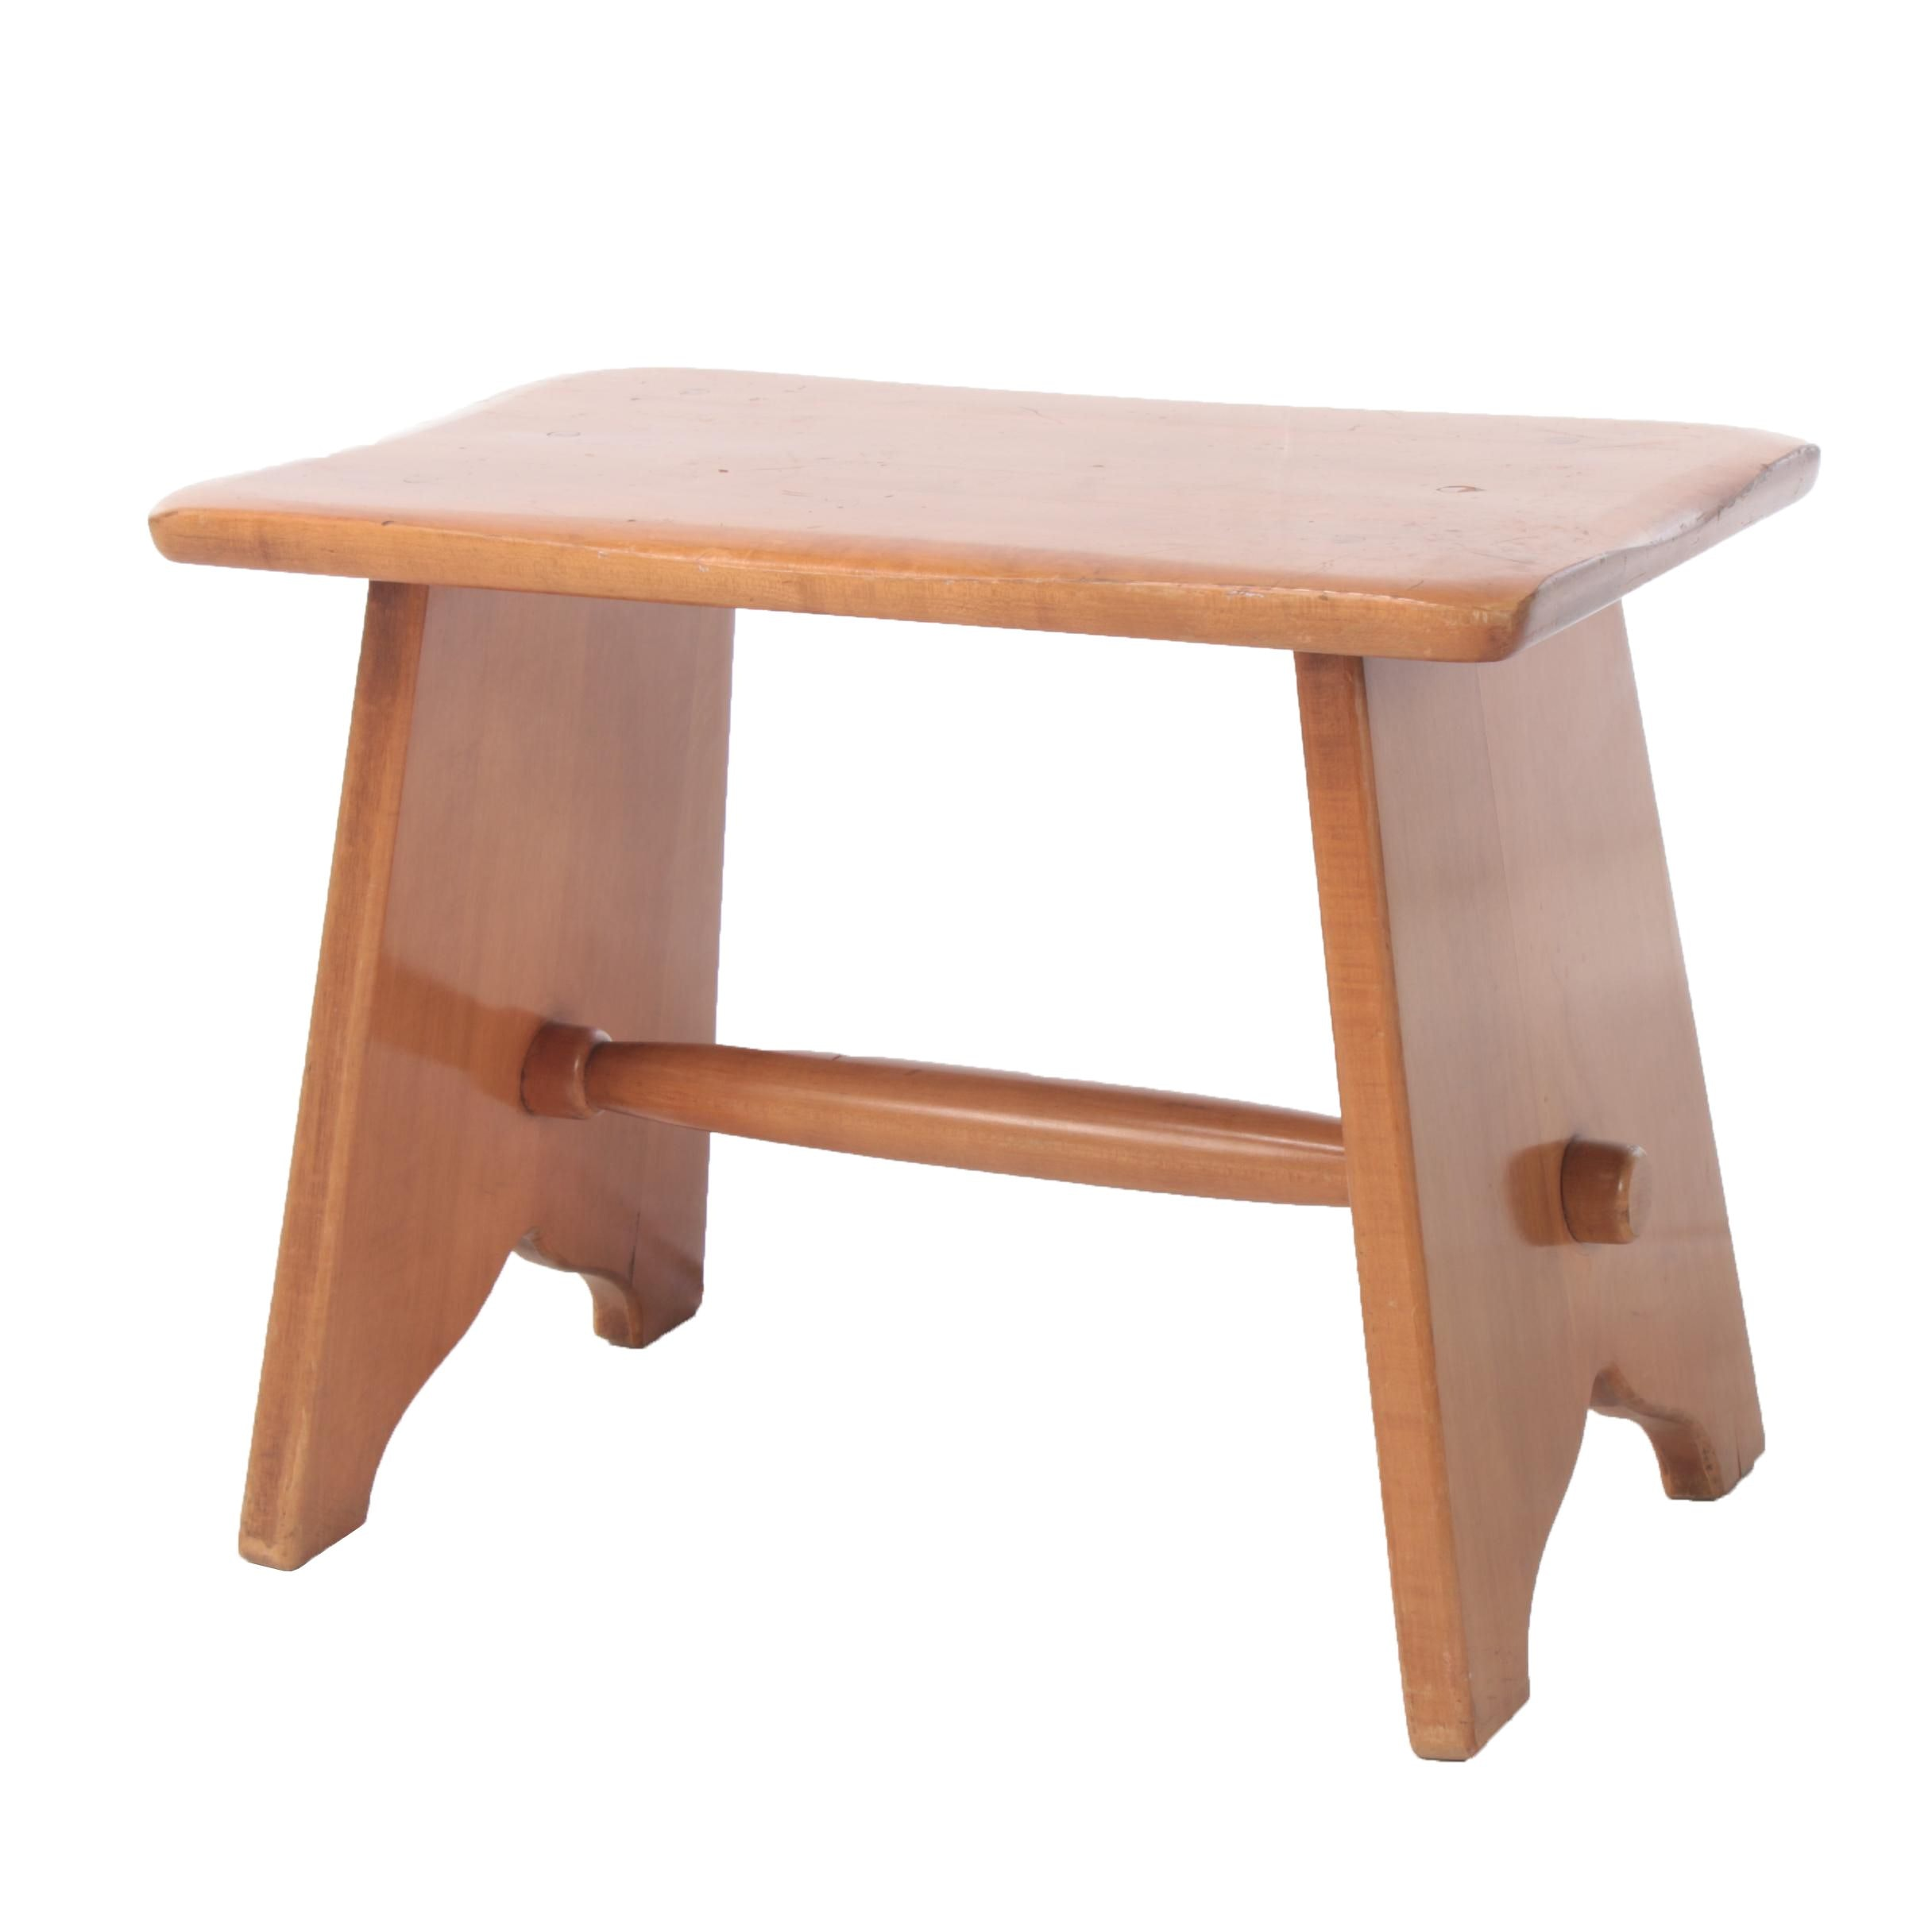 Maple Stool in the Style of Heywood-Wakefield, Mid 20th Century